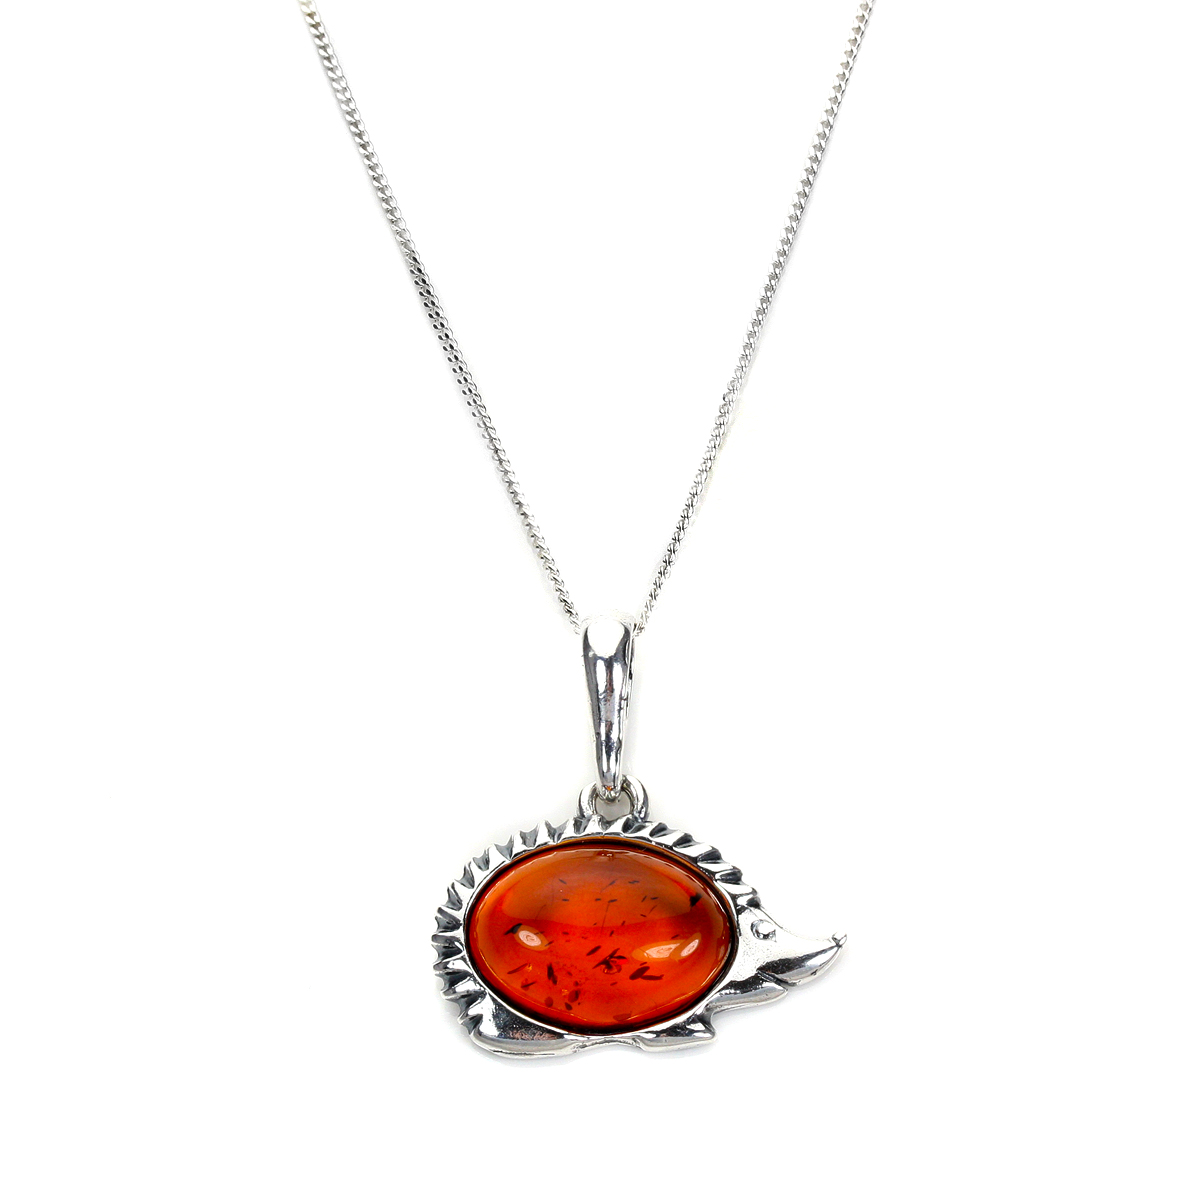 An image of Sterling Silver Baltic Amber Hedgehog Pendant